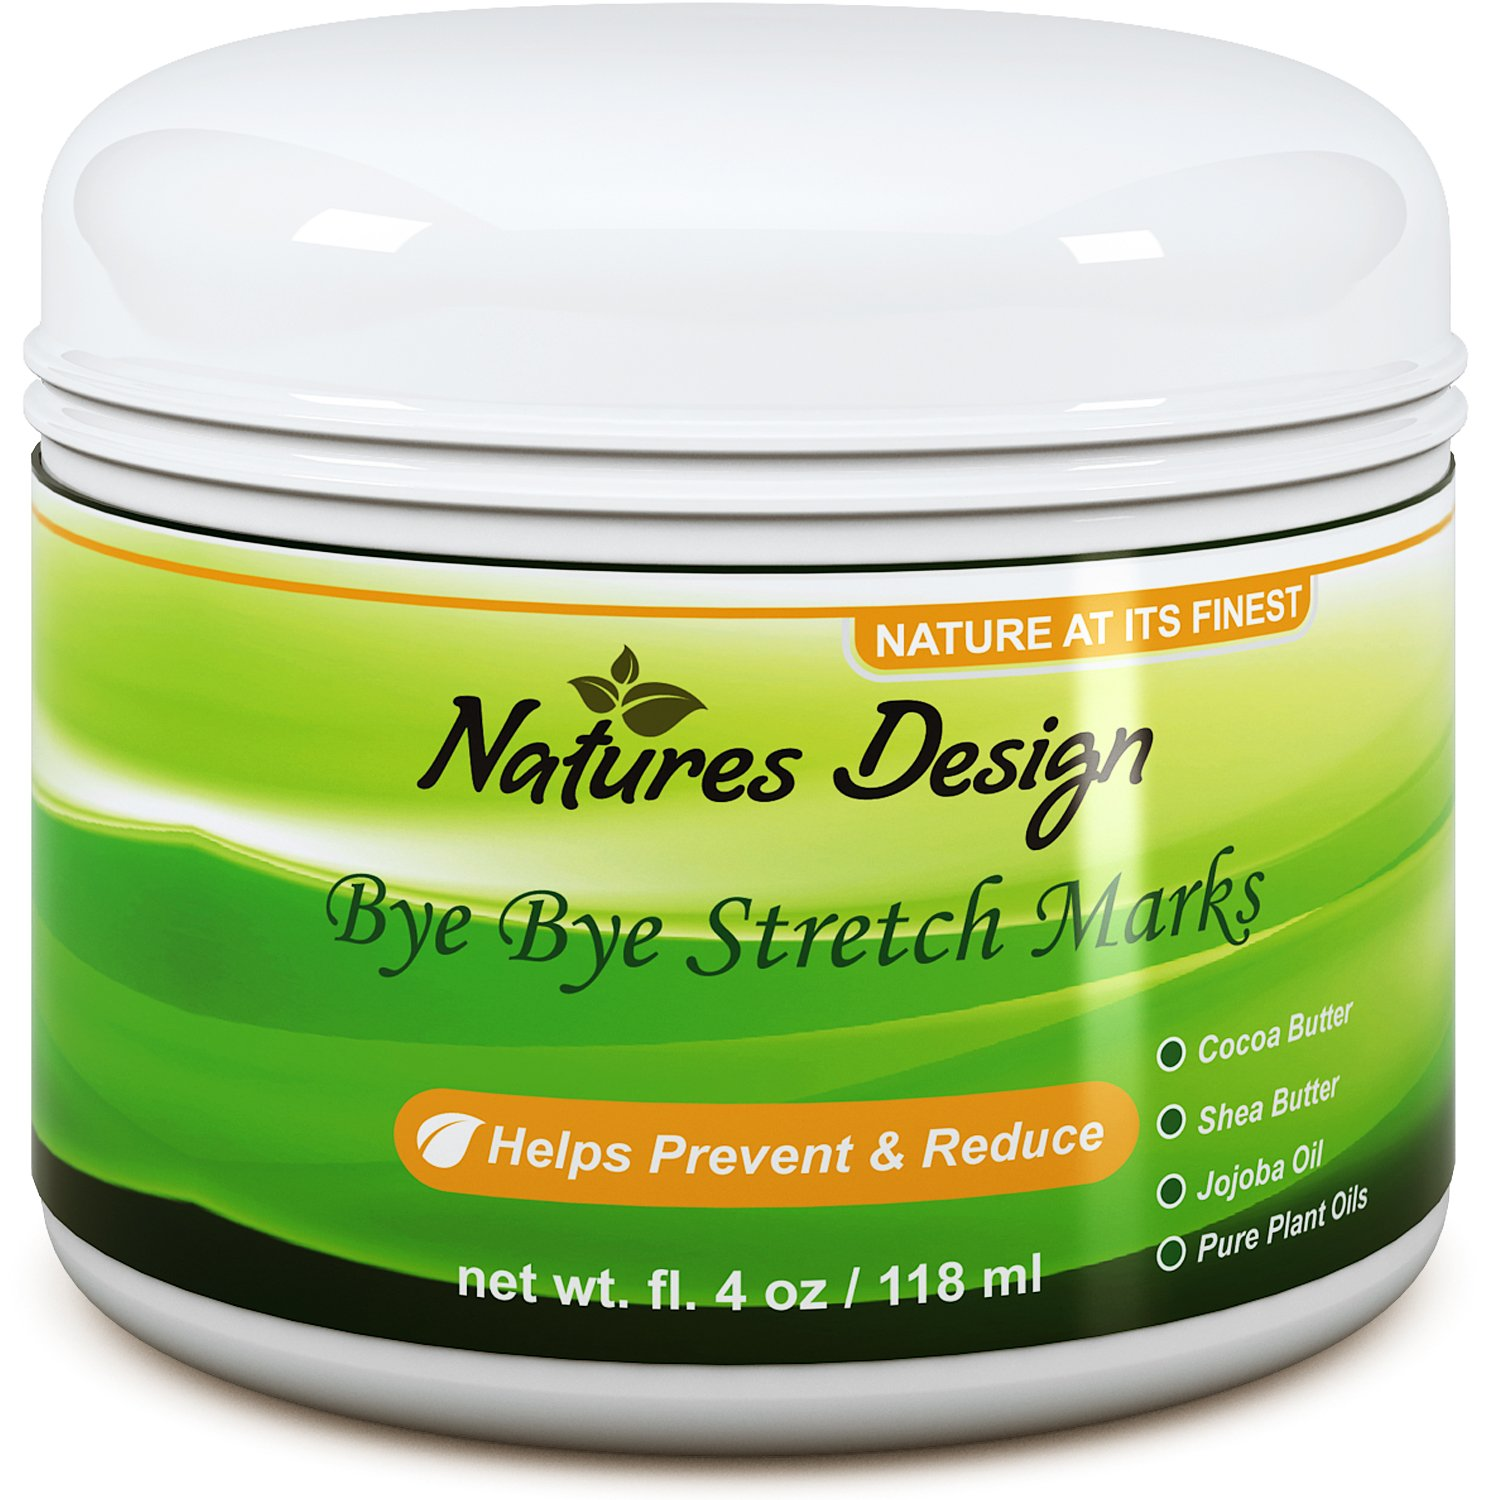 Effective Stretch Mark & Scar Fading Cream - Reduces Pregnancy Stretch Marks & Fades Scars, Fine Lines & Wrinkles Natures Design